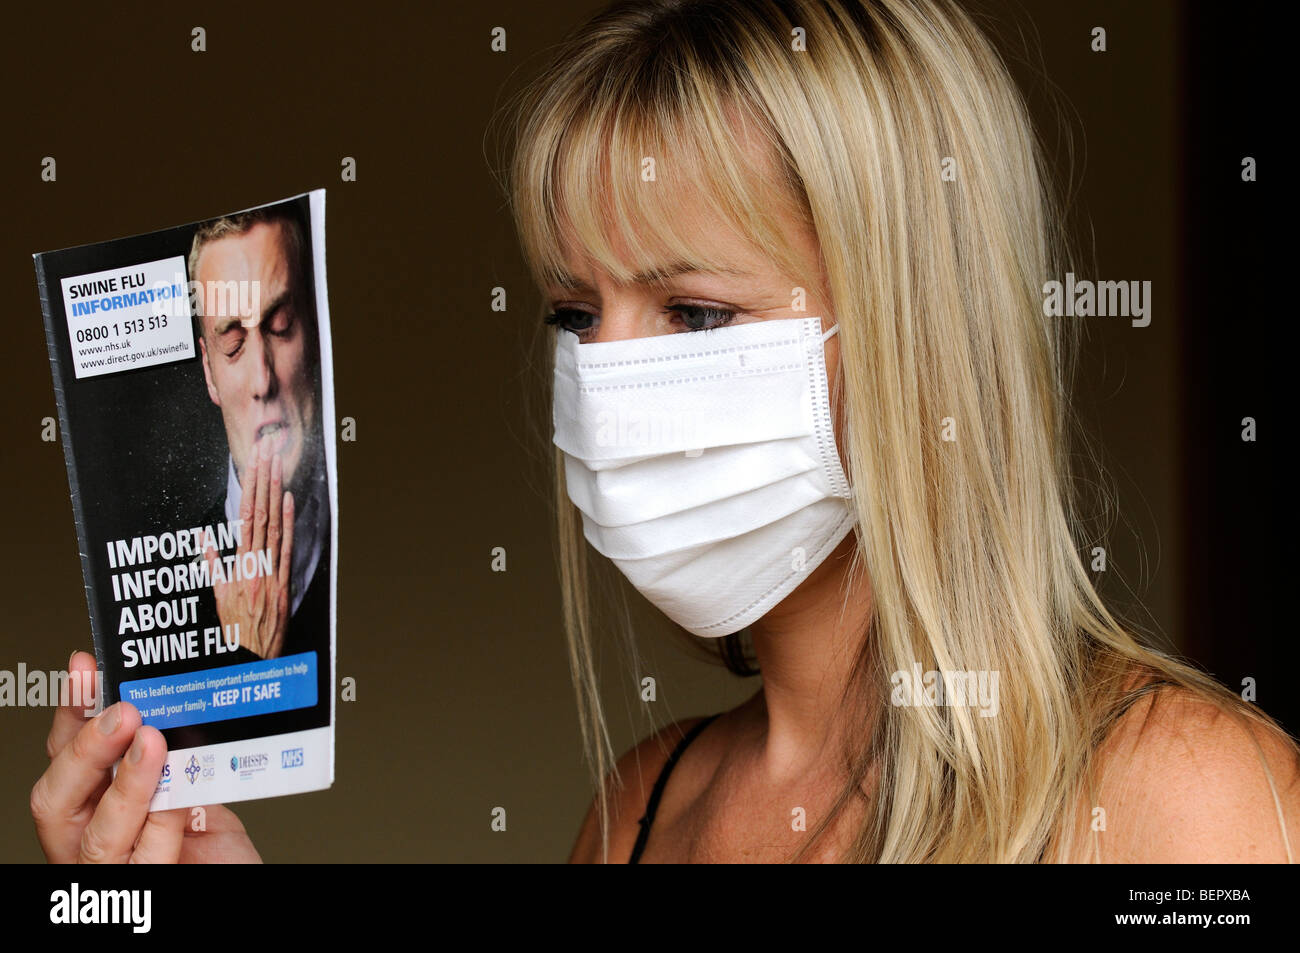 Portrait of a woman wearing a medical mask and reading Swine Flu information booklet Stock Photo